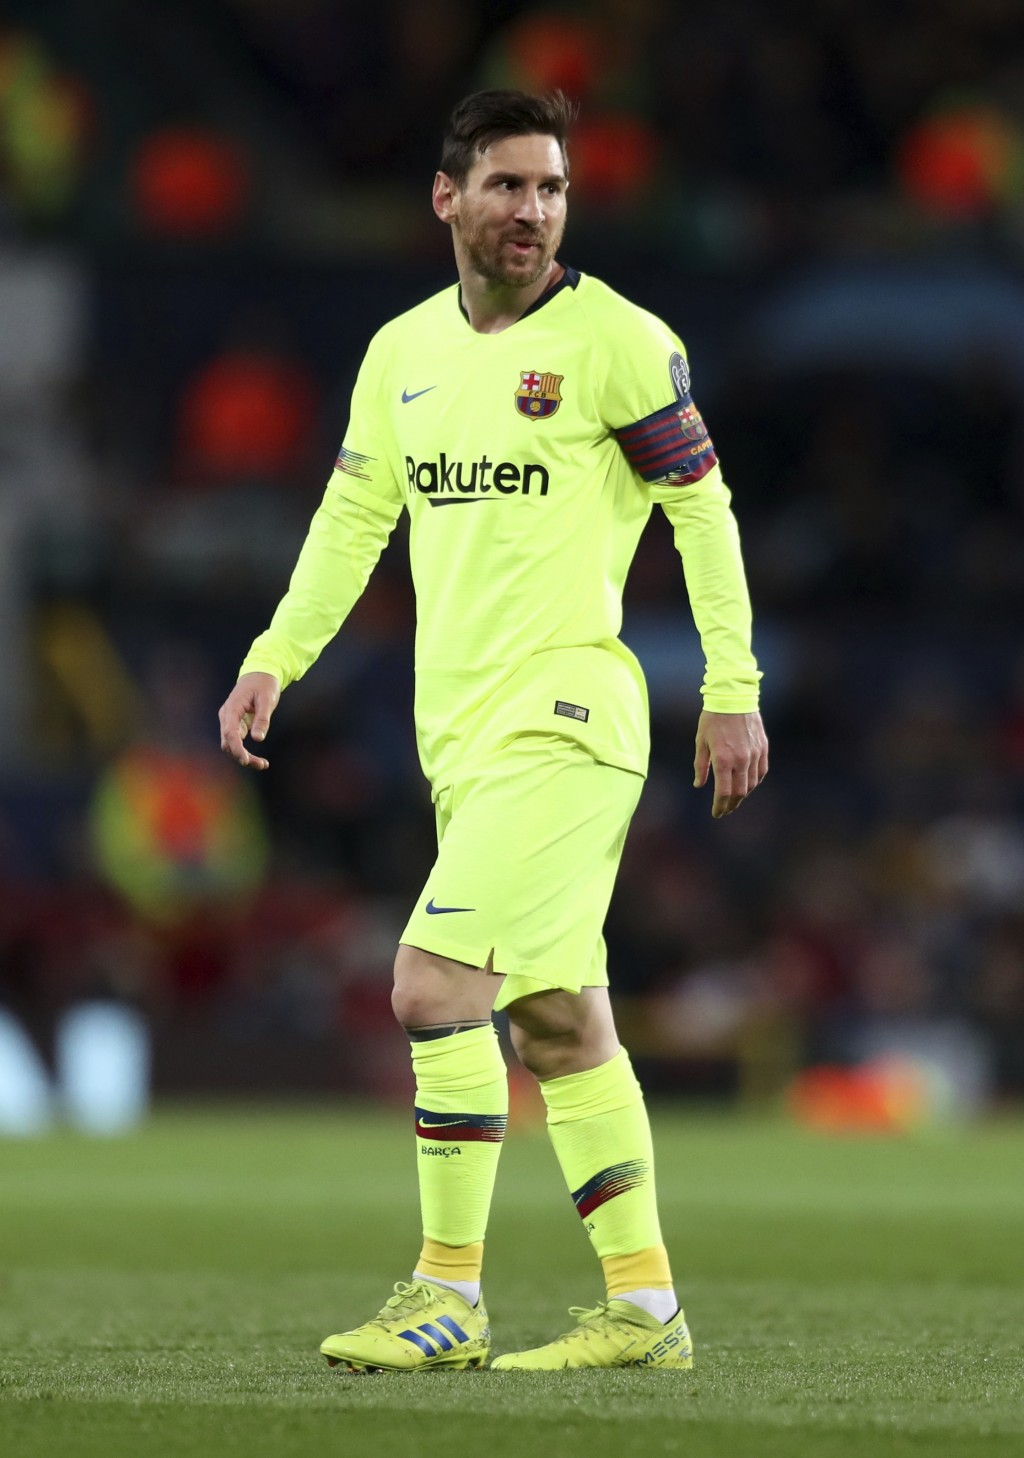 Barcelona's Lionel Messi reacts during the Champions League quarterfinal, first leg, soccer match between Manchester United and FC Barcelona at Old Tr